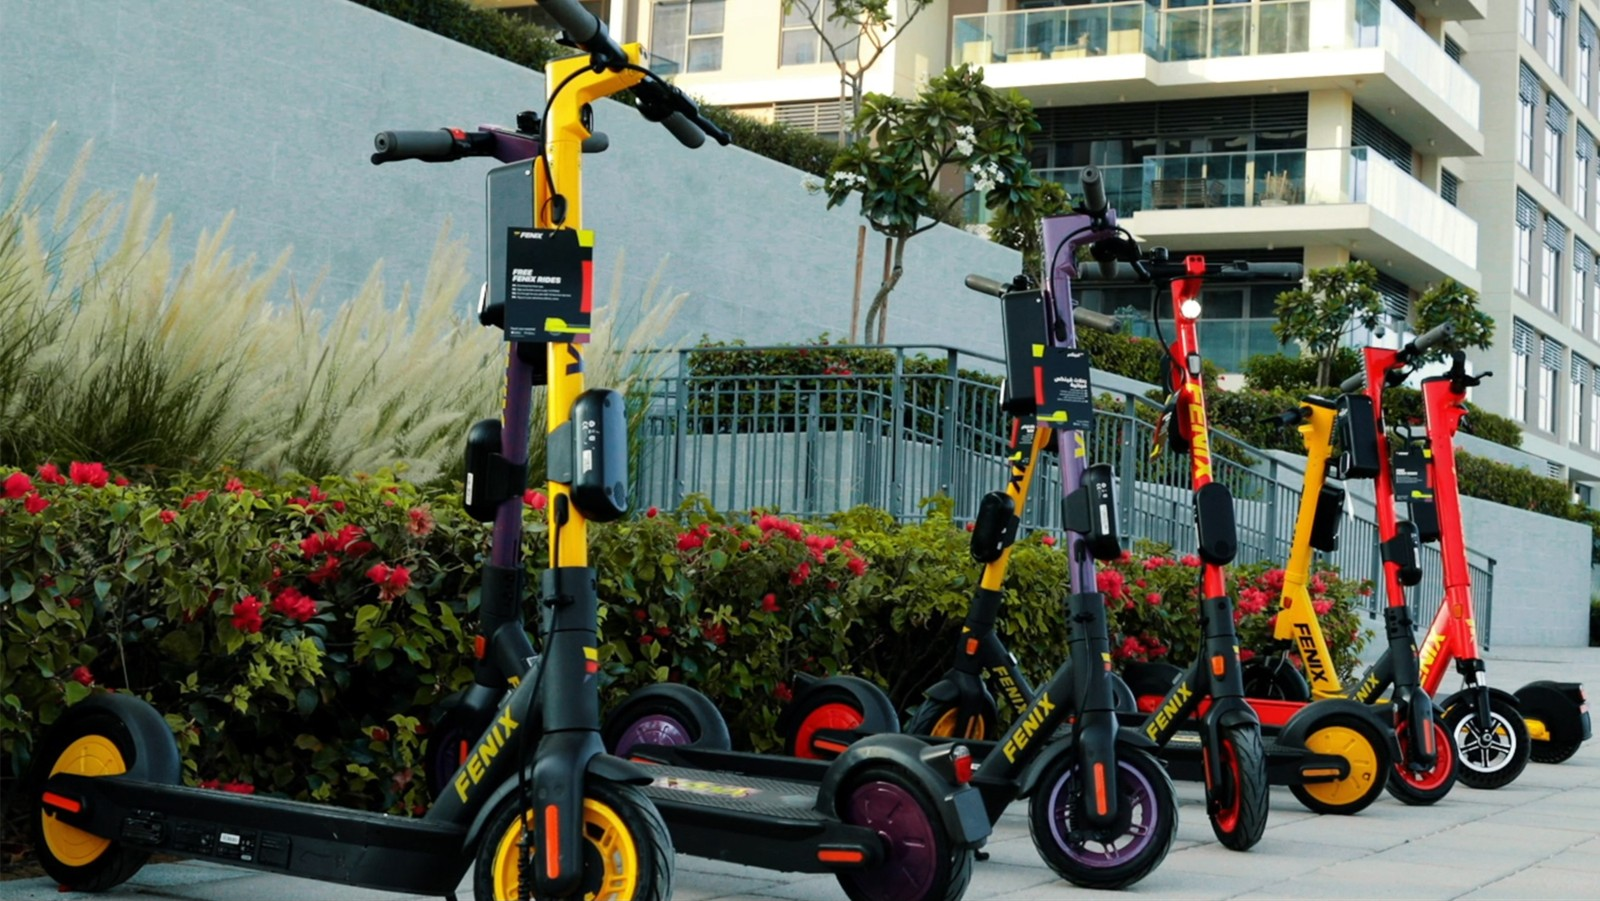 Israeli VC invests in UAE-based micro-mobility startup